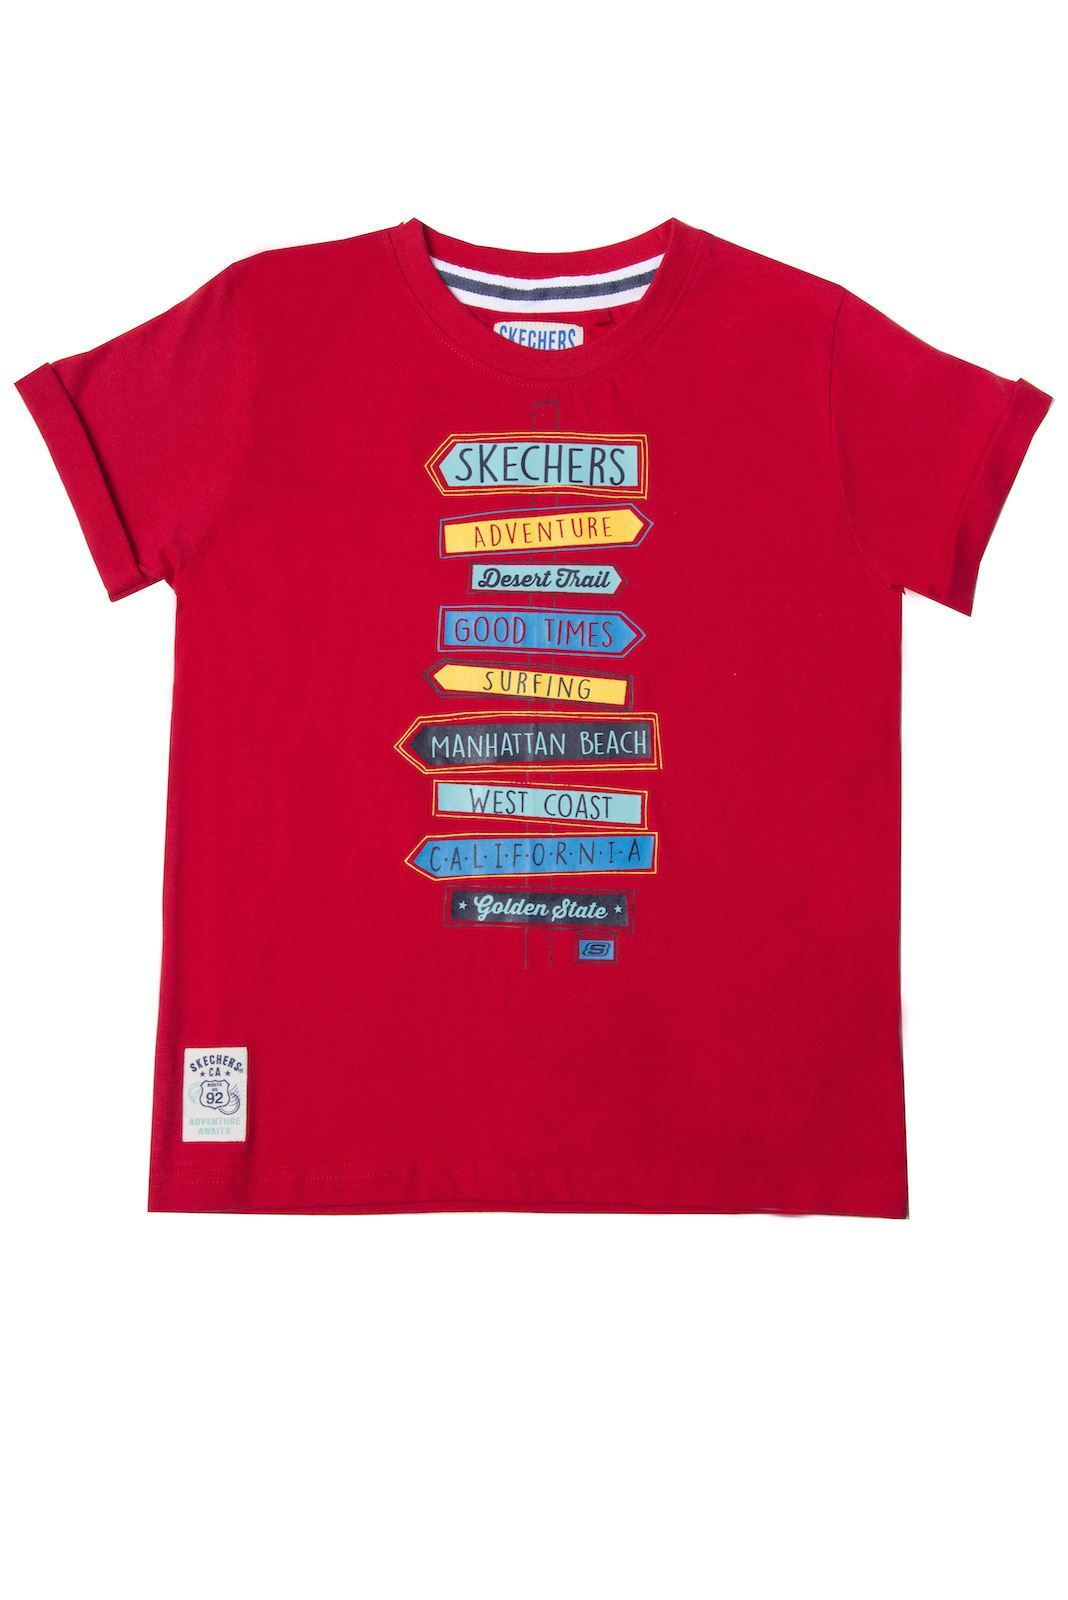 585e00ea770 skechers t shirt red cheap   OFF76% The Largest Catalog Discounts